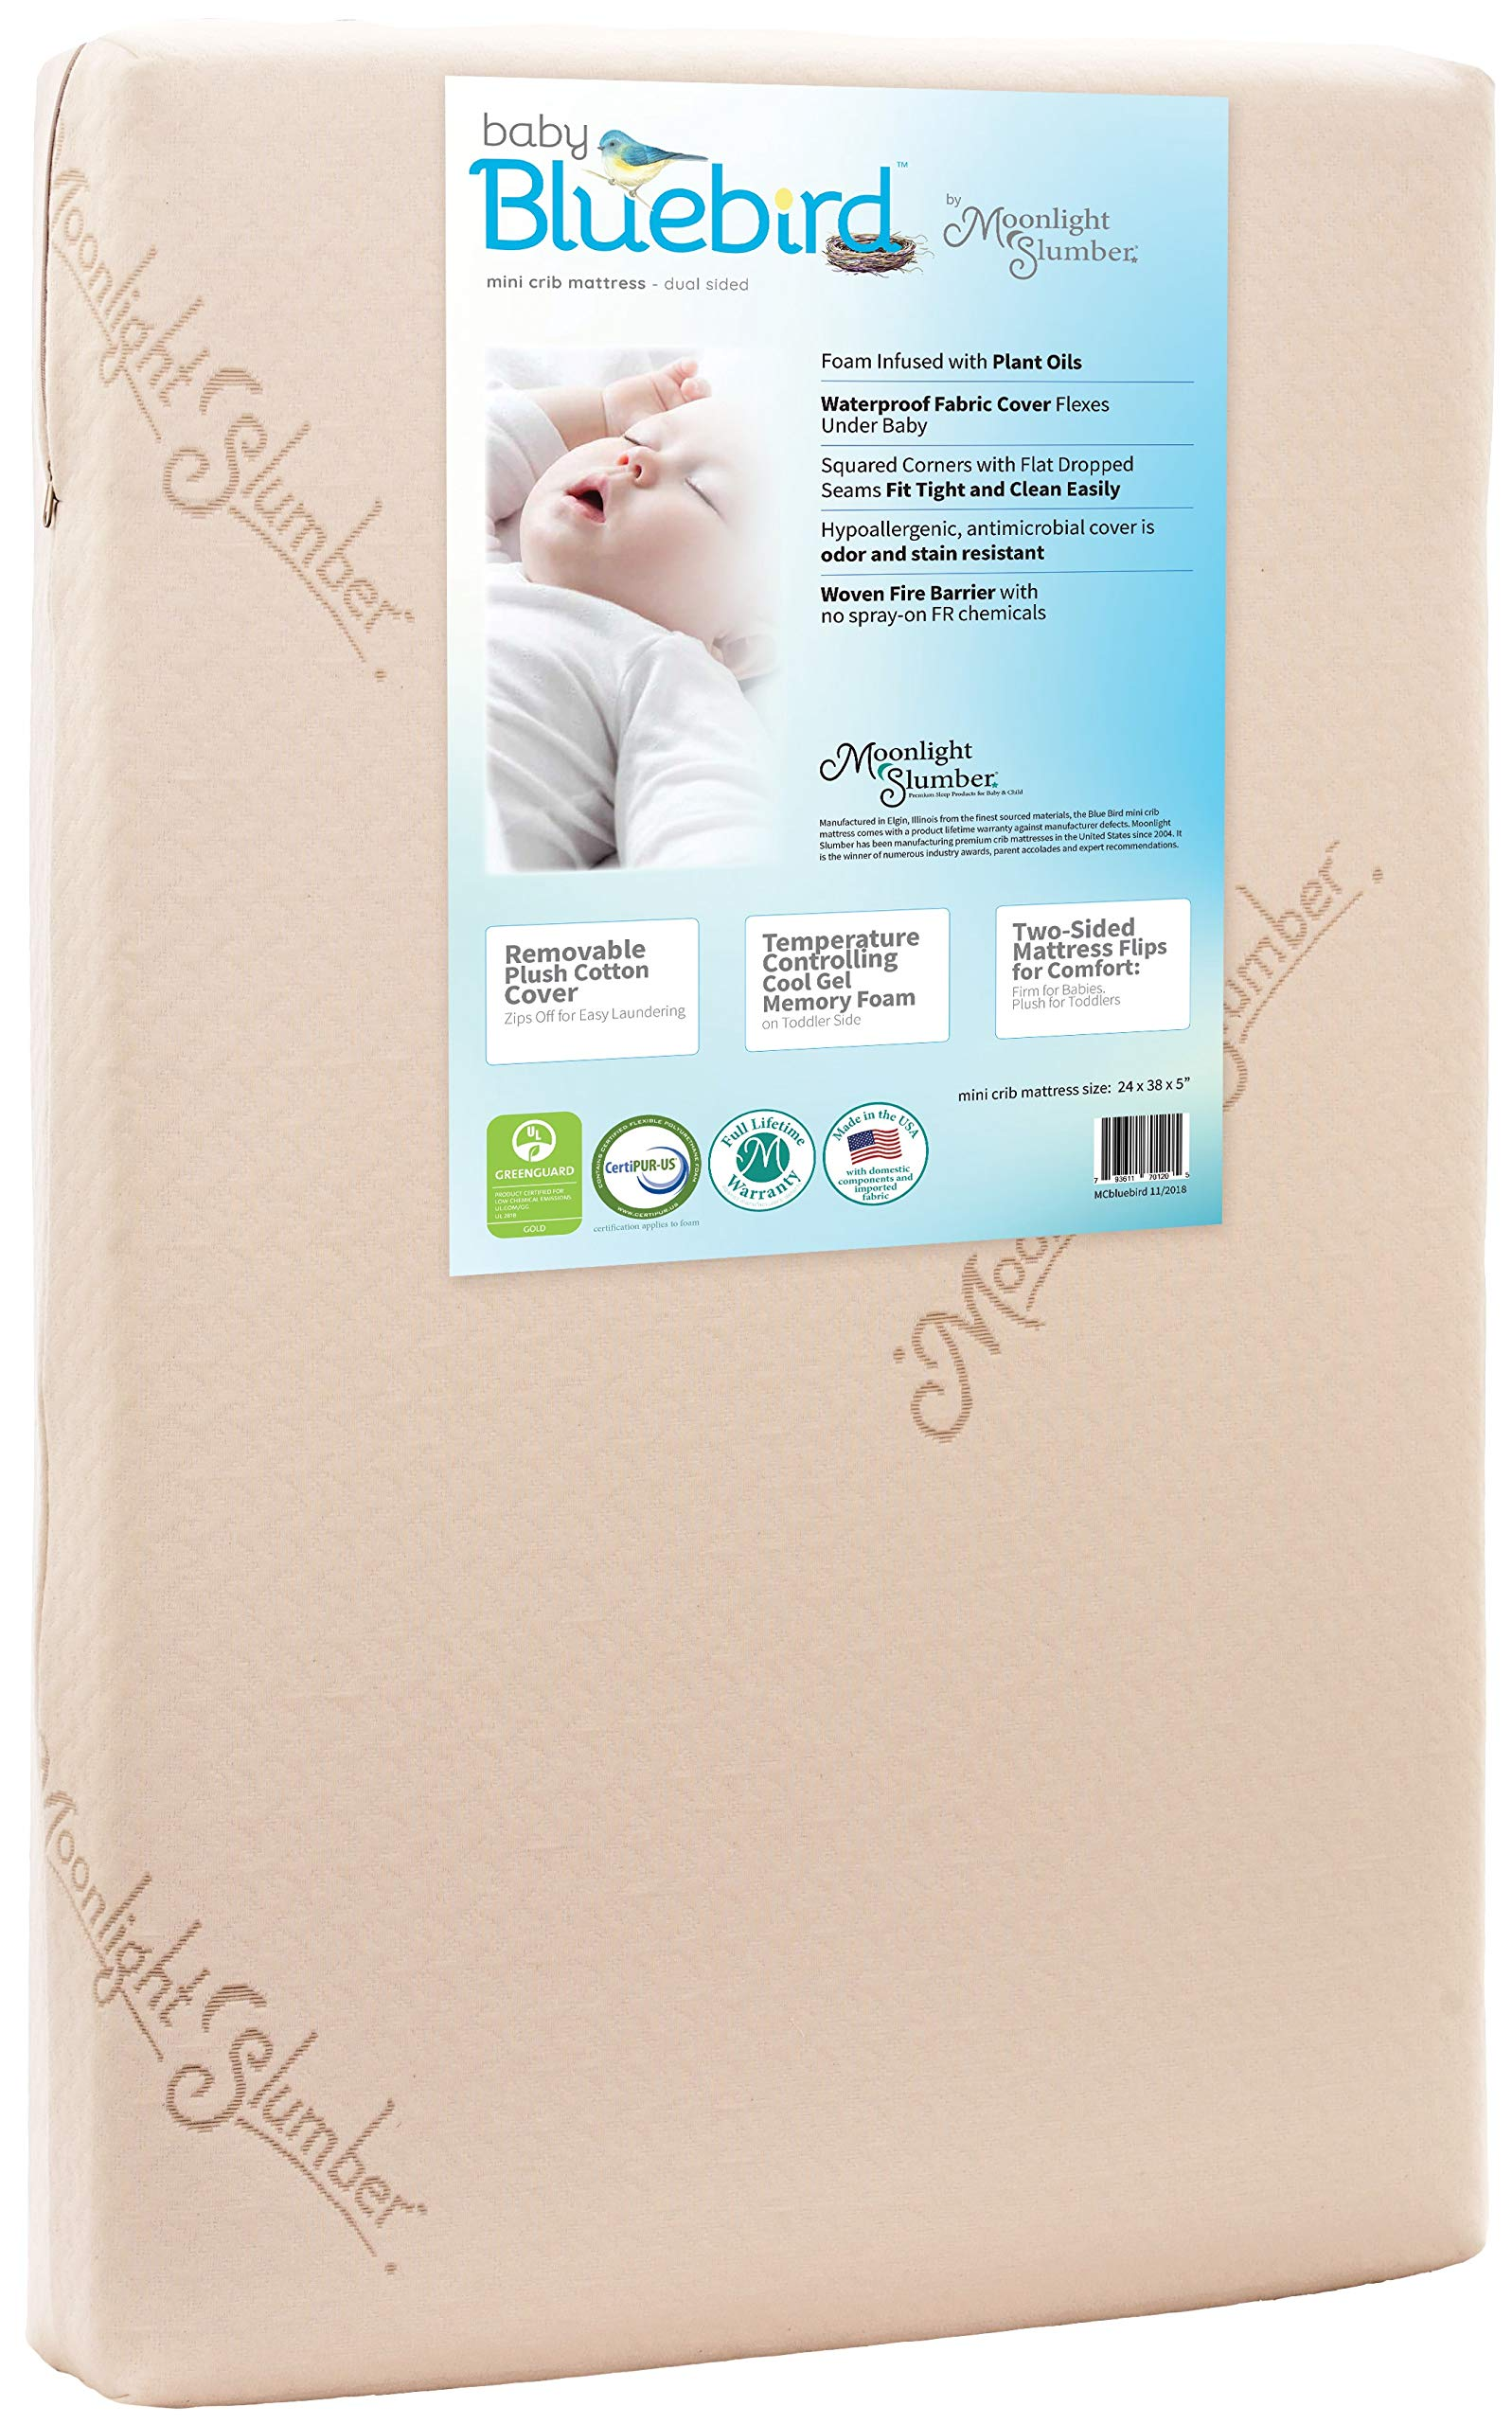 Moonlight Slumber Mini Crib Mattress 5'' Dual Firmness: Baby Bluebird Waterproof Portable Crib & Toddler Bed Mattress : Cool Gel Memory Foam + Removable Plush Cotton Cover. Hand Made in USA (38x24x5) by Moonlight Slumber